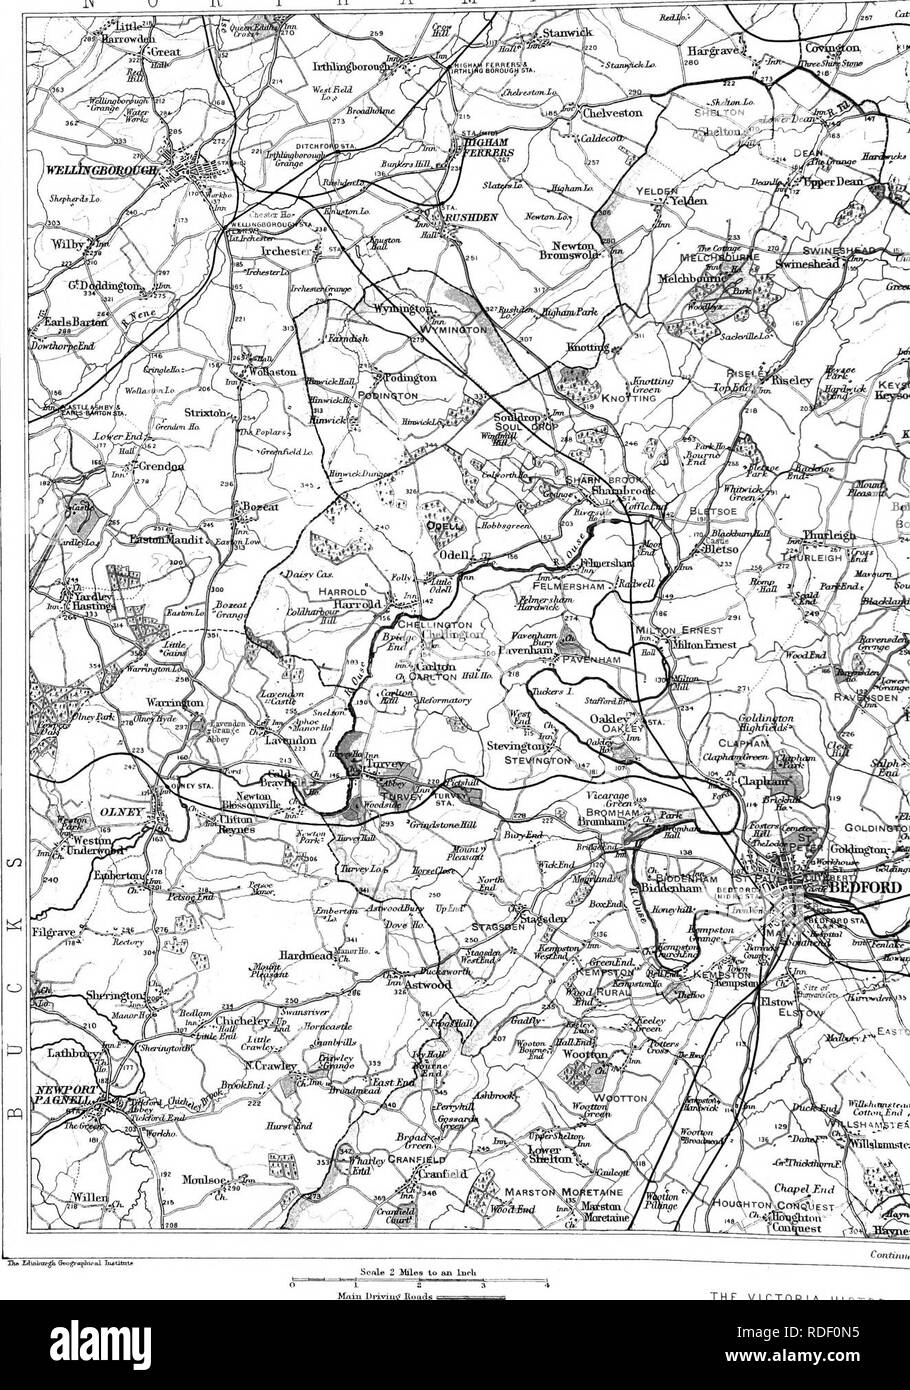 . The Victoria history of the county of Bedford. Natural history. TOPOGRAPHIC, HISTORY OF BEDFORDSHIRE N 0 R T HAM P  T   ^ ^. Mfiin Didviug iRoads THE VICTORIA HISTORY C. Please note that these images are extracted from scanned page images that may have been digitally enhanced for readability - coloration and appearance of these illustrations may not perfectly resemble the original work.. Page, William, 1861-1934, ed; Doubleday, H. Arthur (Herbert Arthur), 1867-1941. Westminster [A. Constable] Stock Photo